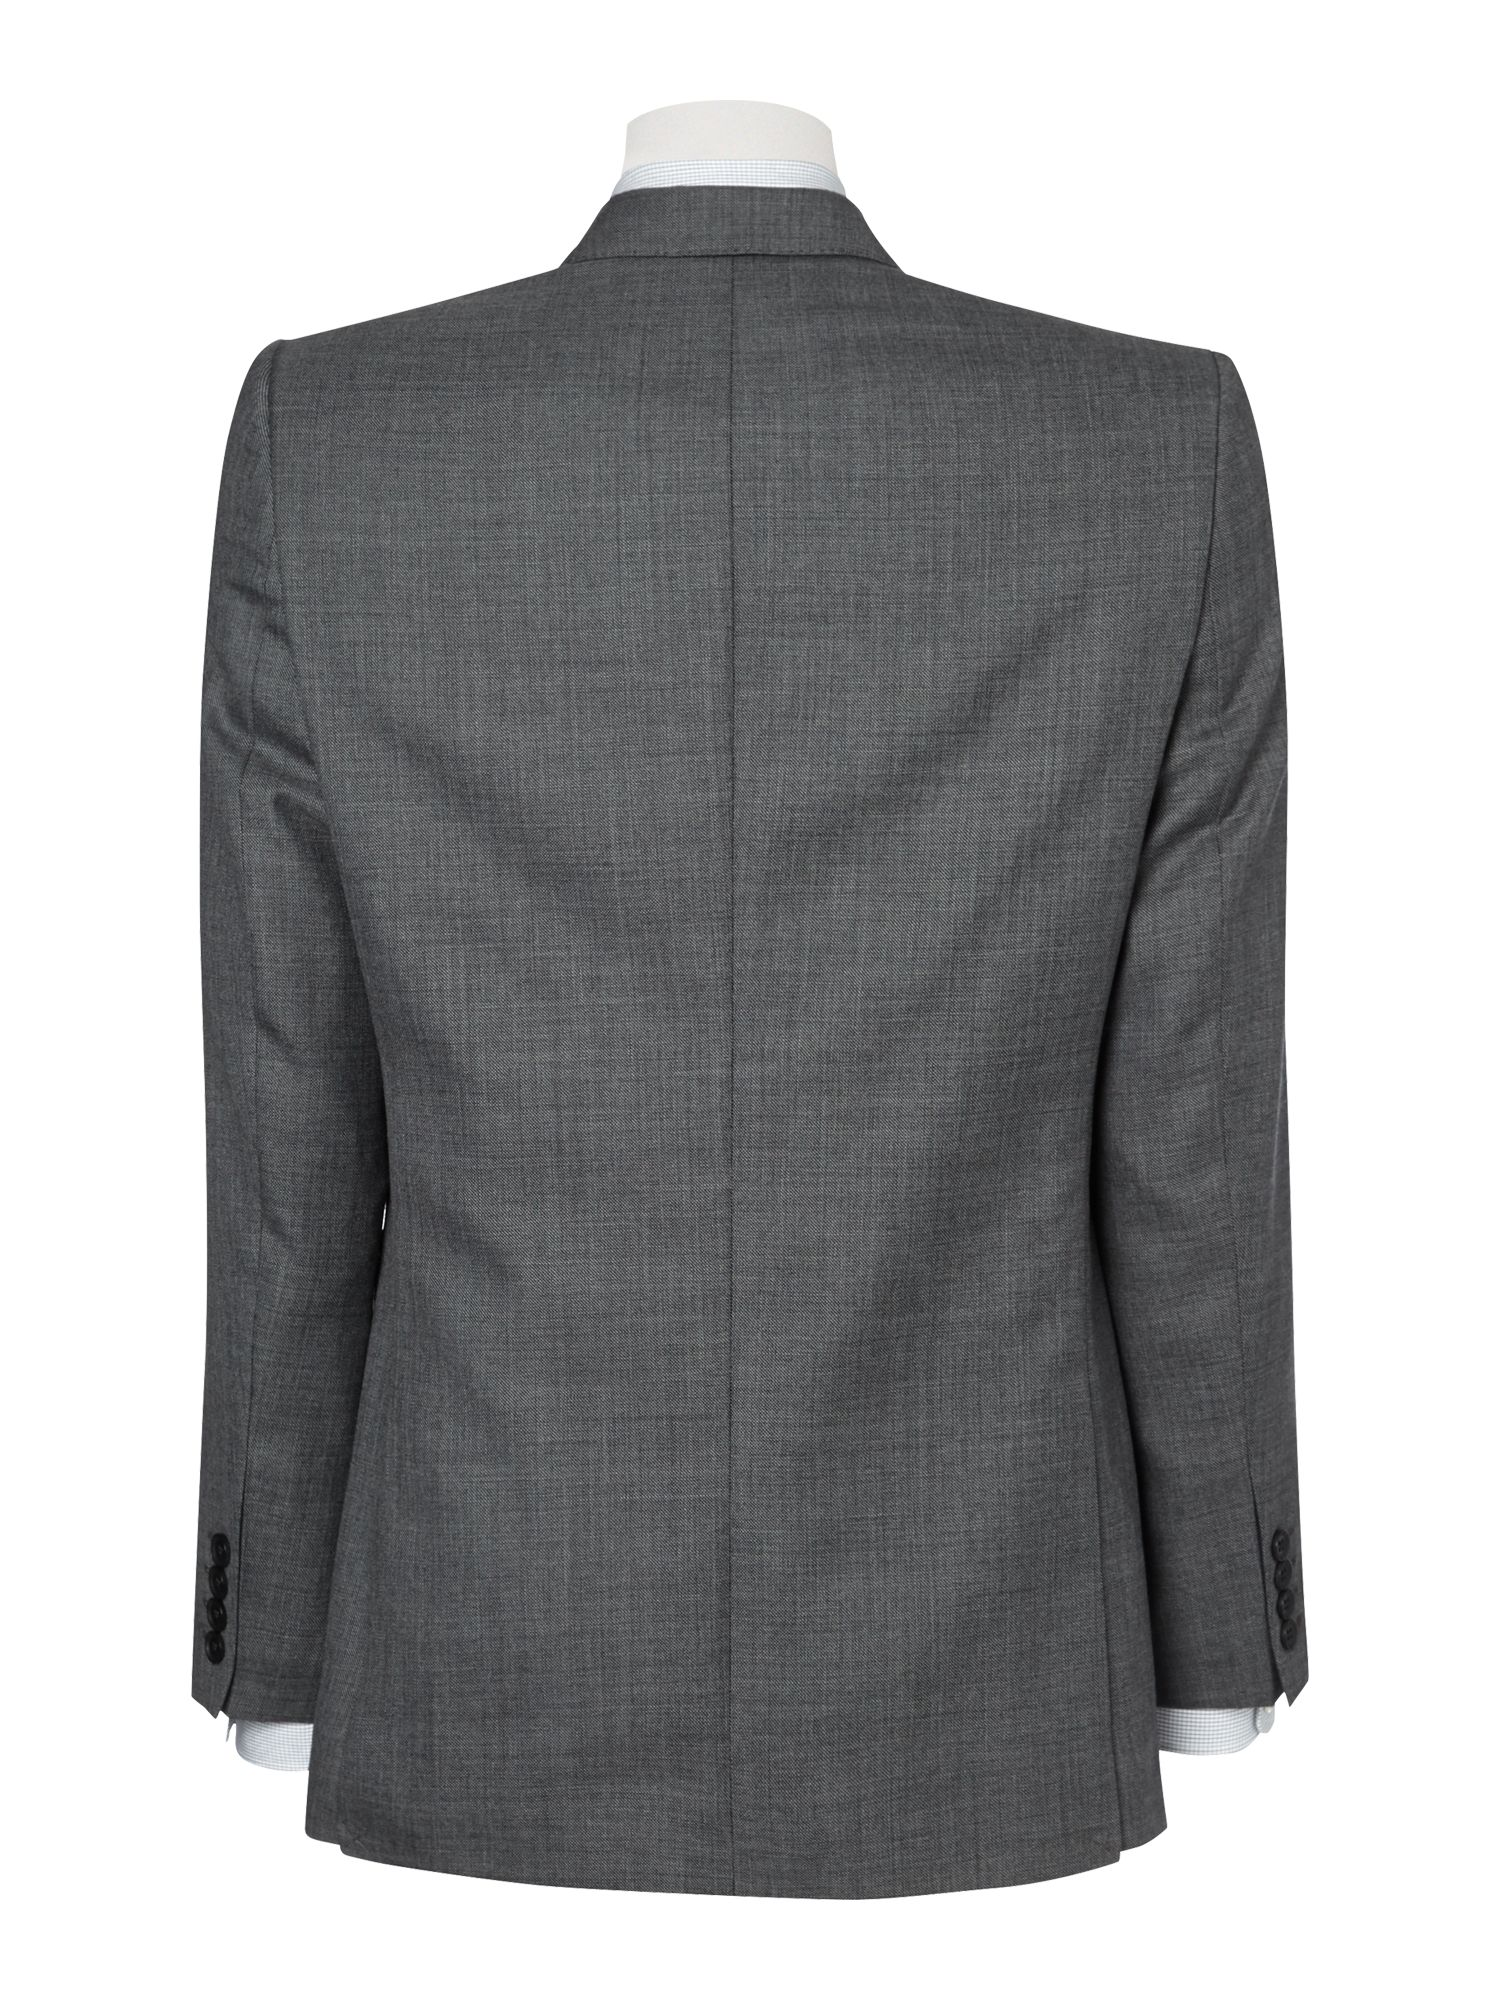 Sharkskin jacket